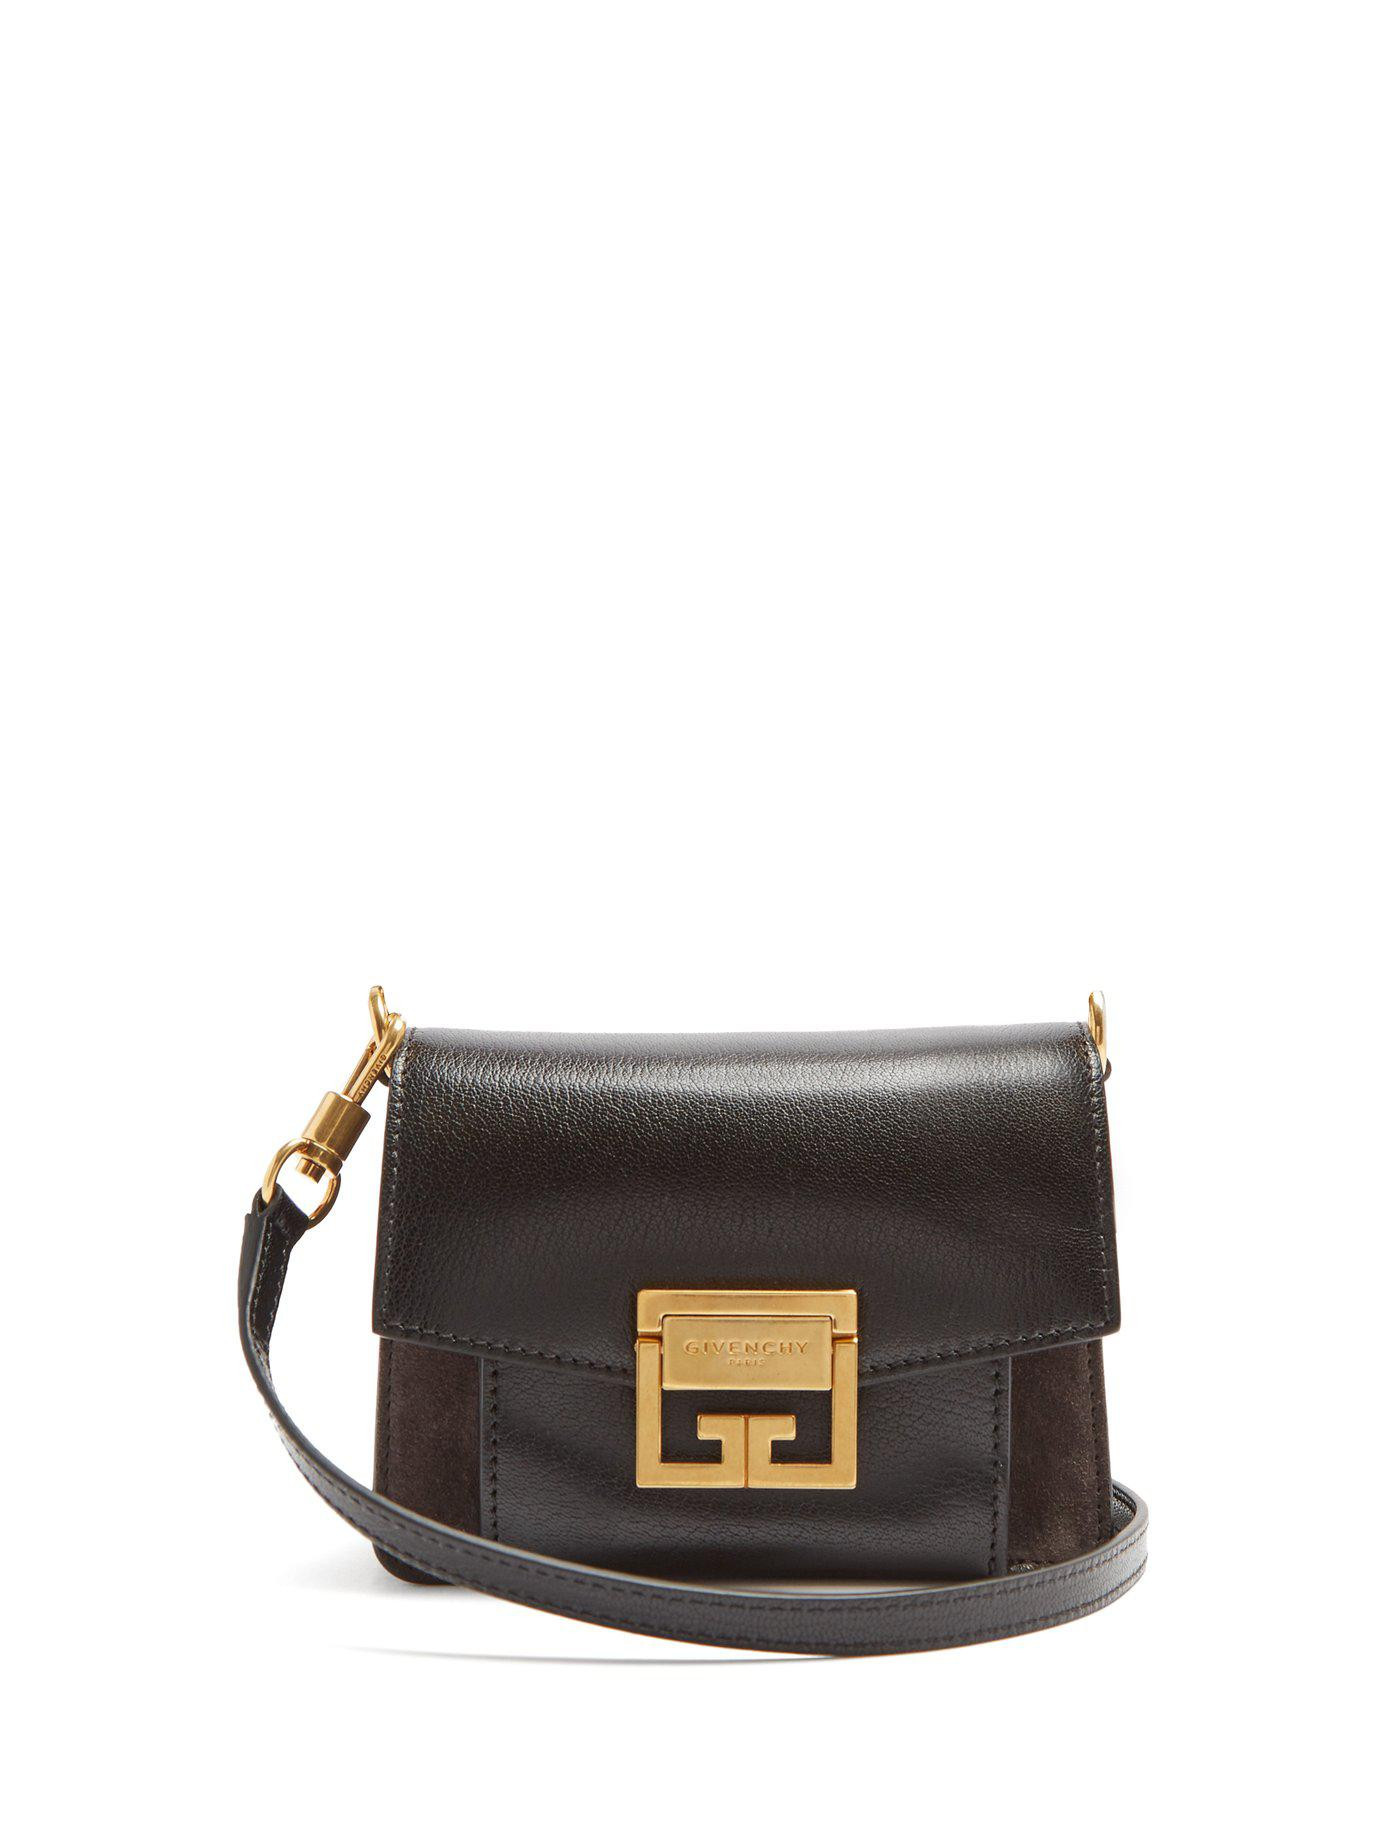 4743a244171e Lyst - Givenchy Gv3 Mini Suede And Leather Cross Body Bag in Black